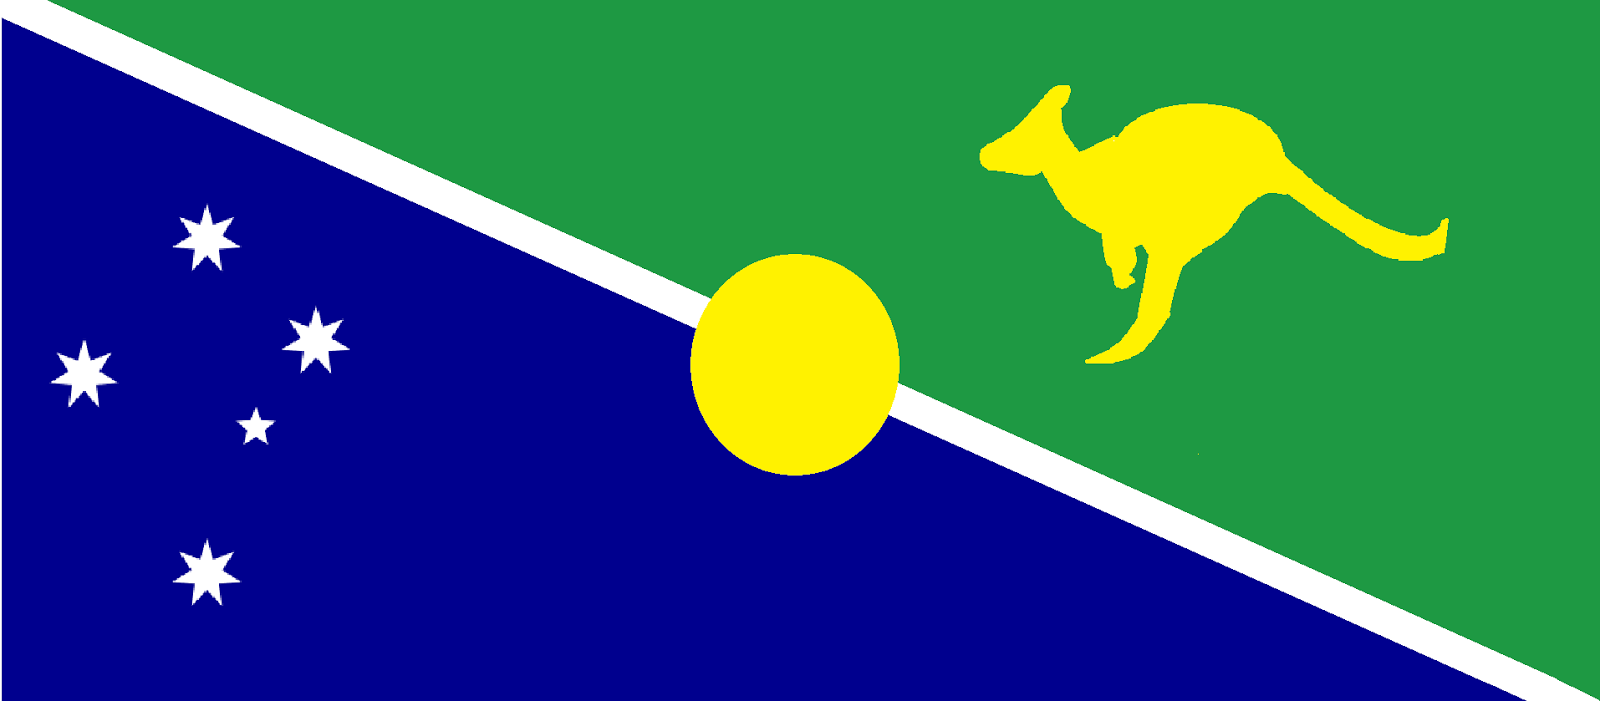 Christmas Island Flag.A New Flag For Australia Inspiring From The Christmas